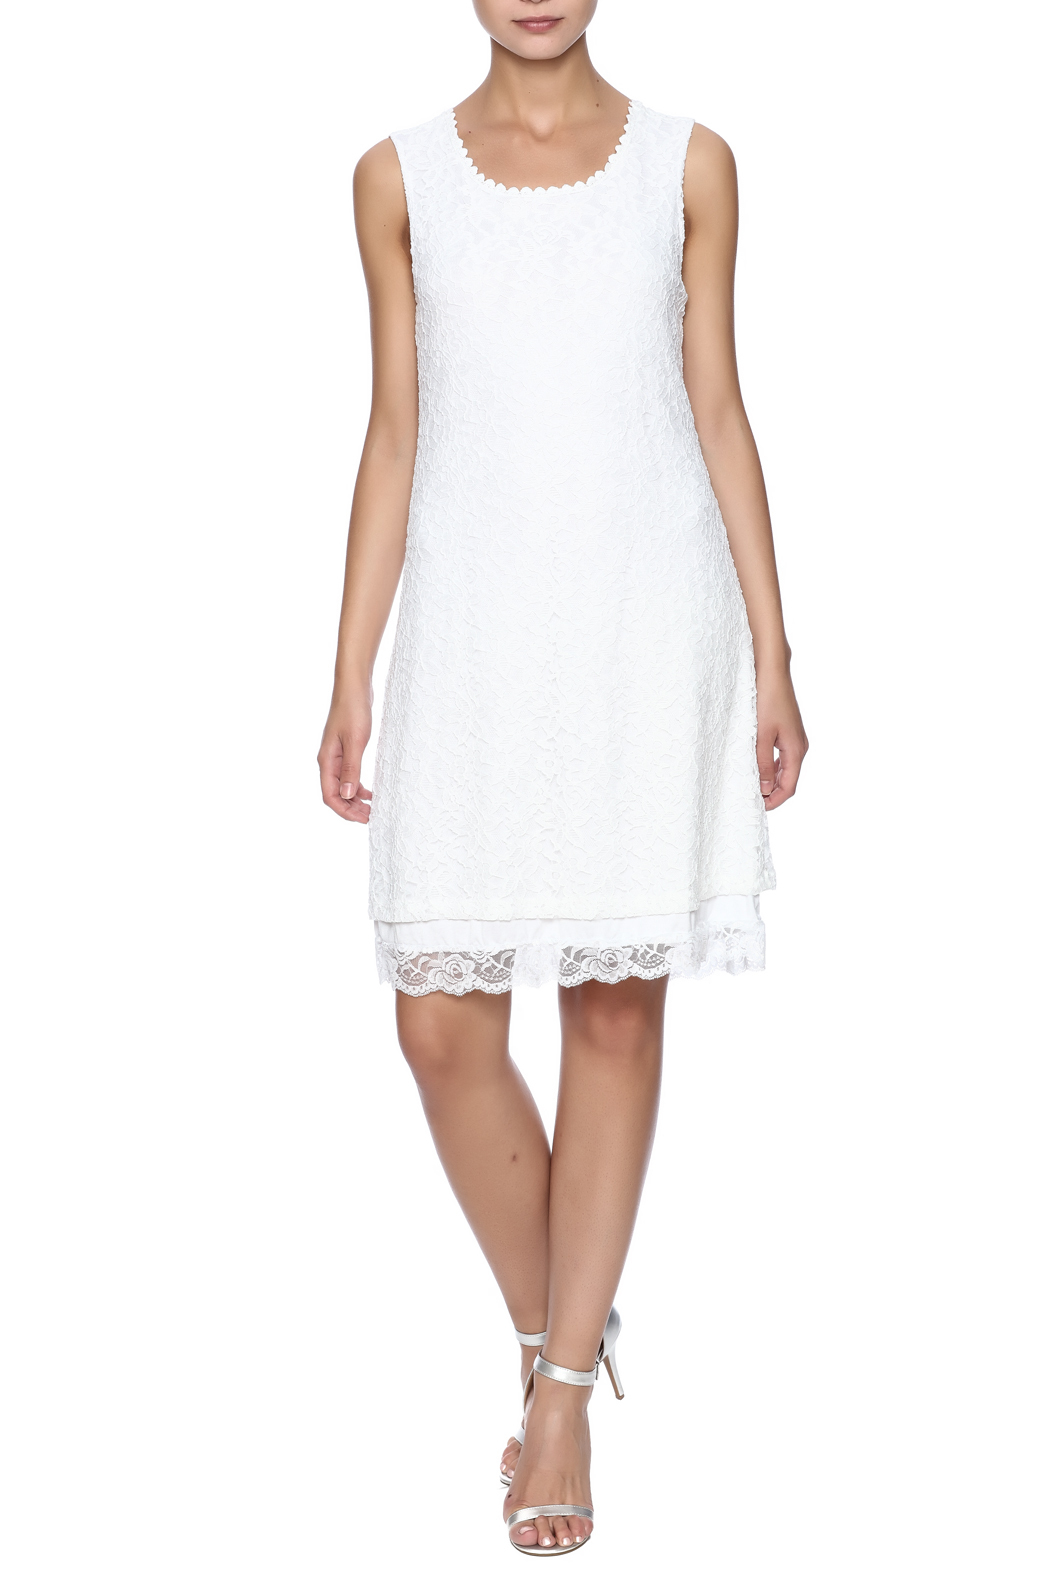 Charlie B. White Lace Dress - Front Full Image